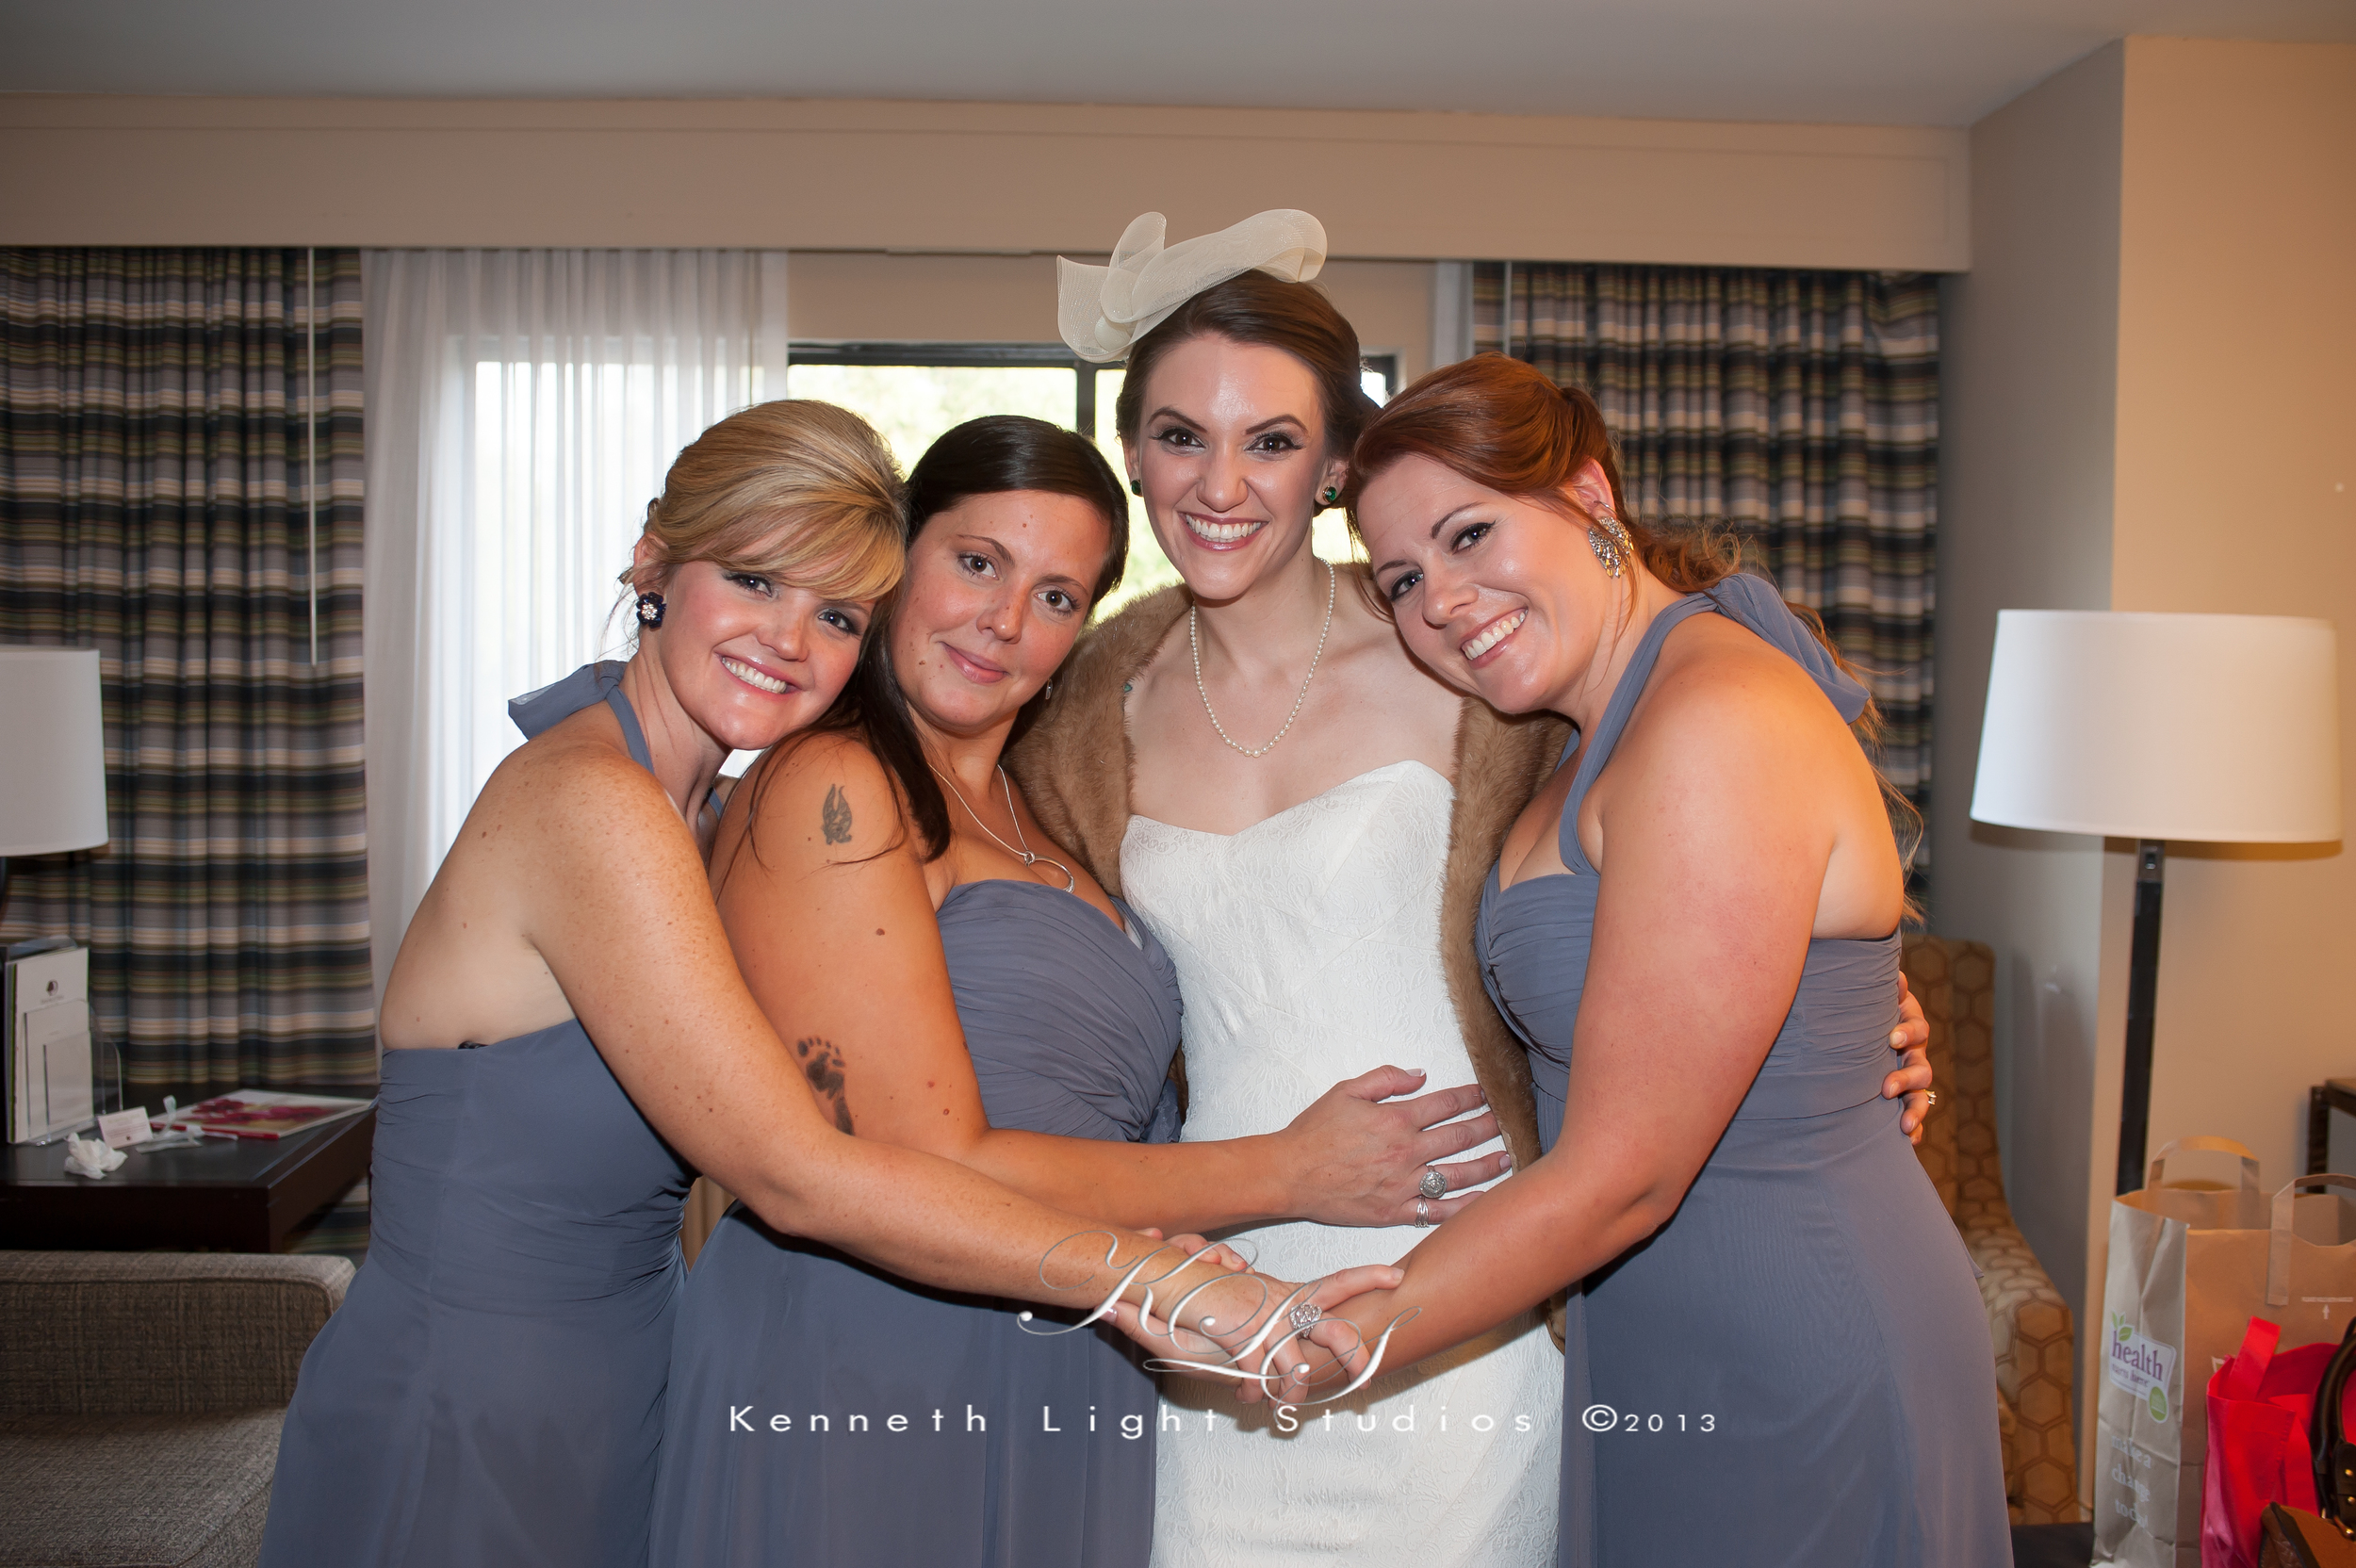 Friends come together at a Wedding